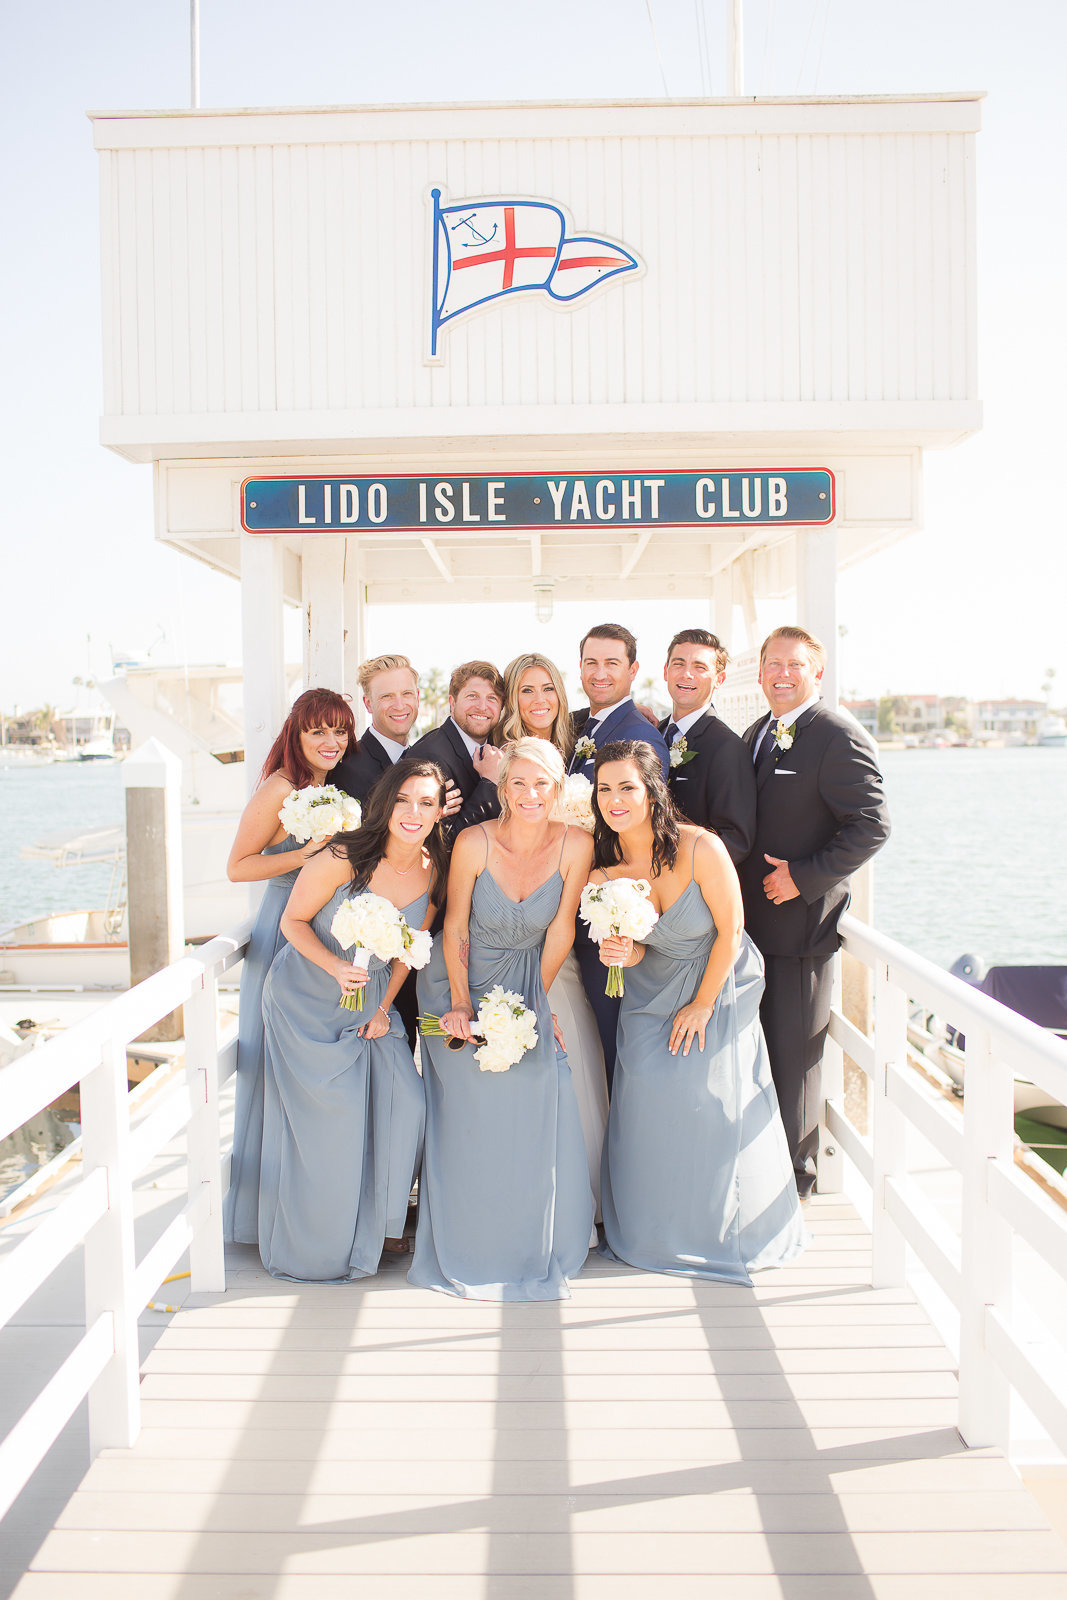 Bride and Groom Wedding Photo Ideas Theresa Bridget Photography Photo-708